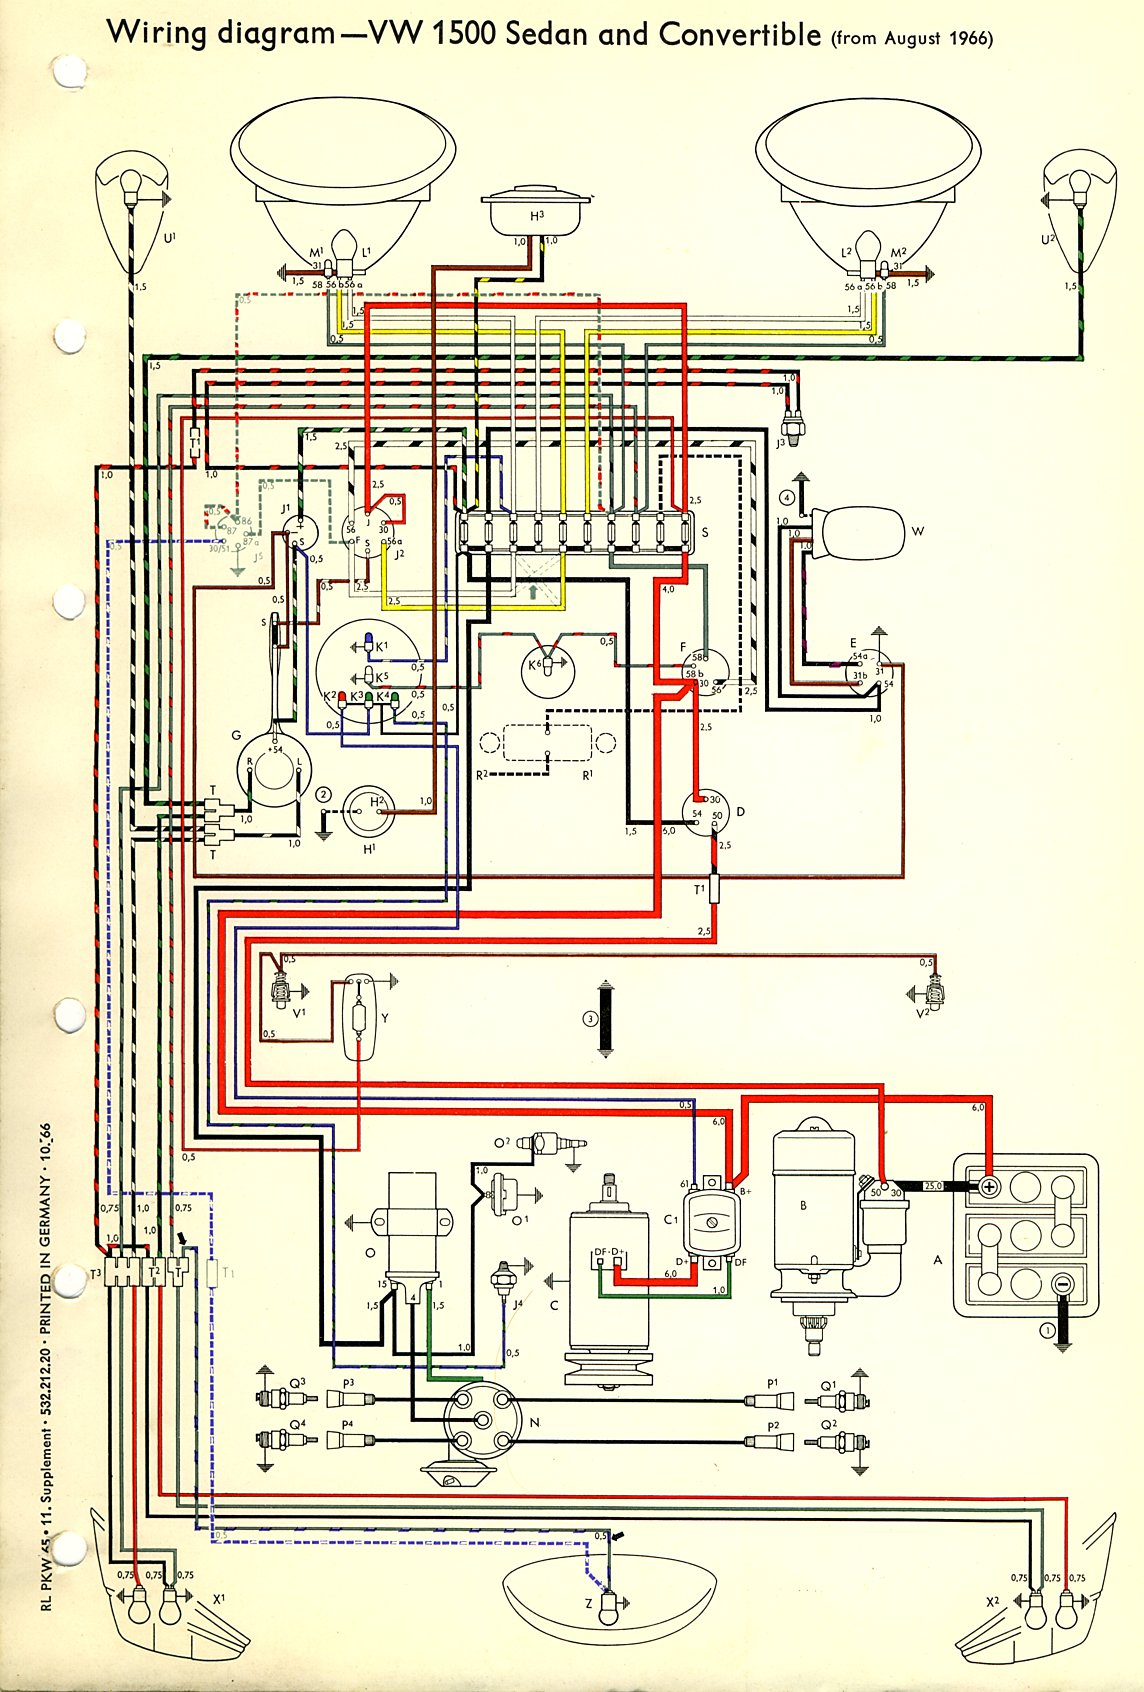 72 Vw Wiring Harness Starting Know About Wiring Diagram \u2022 VW Wiring  Diagram 72 Vw Wiring Harness